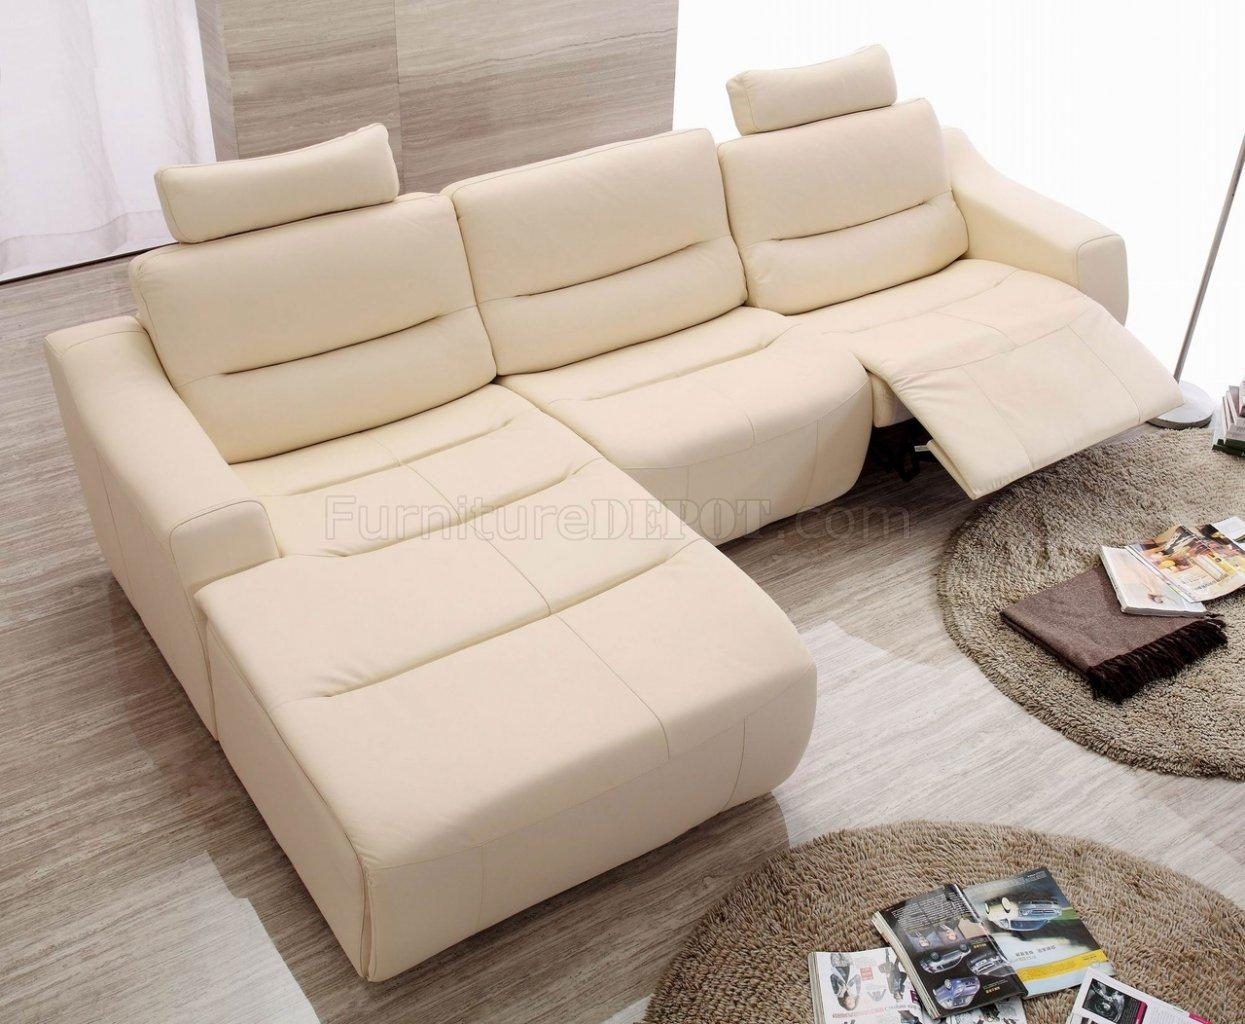 Sectional Reclining Sofas For Small Spaces | Tehranmix Decoration Regarding Sectional Sofas For Small Spaces With Recliners (Image 12 of 20)